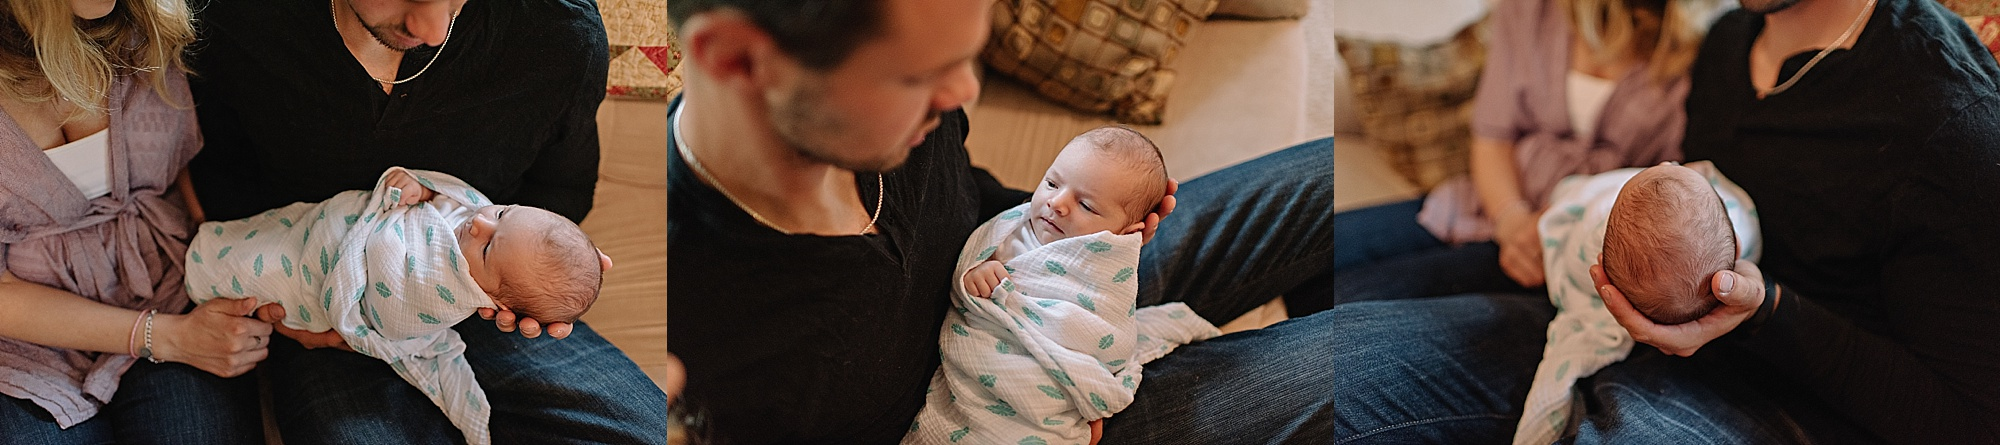 lauren-grayson-photography-cleveland-ohio-photographer-family-newborn-in-home-lifestyle-baby-session-gracelynne_0400.jpg